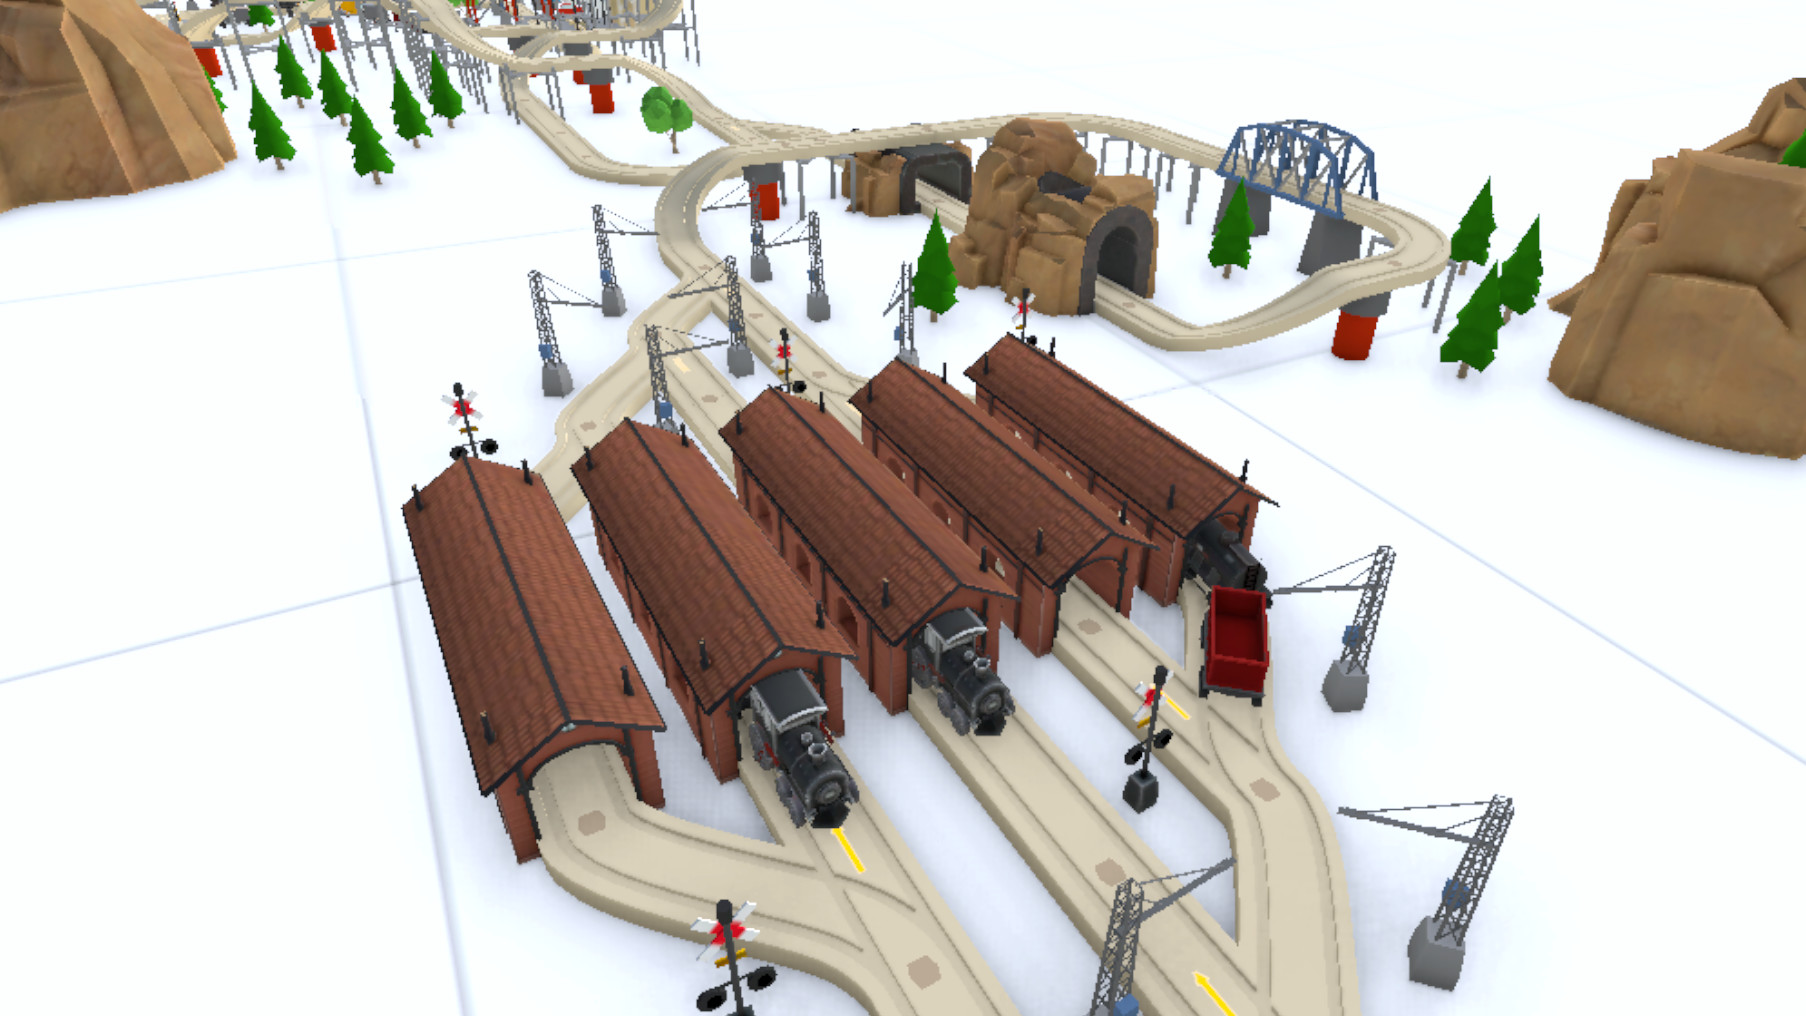 'TrainerVR' is a Physics-based VR Model Train Set that Brings You Back to Simpler Times